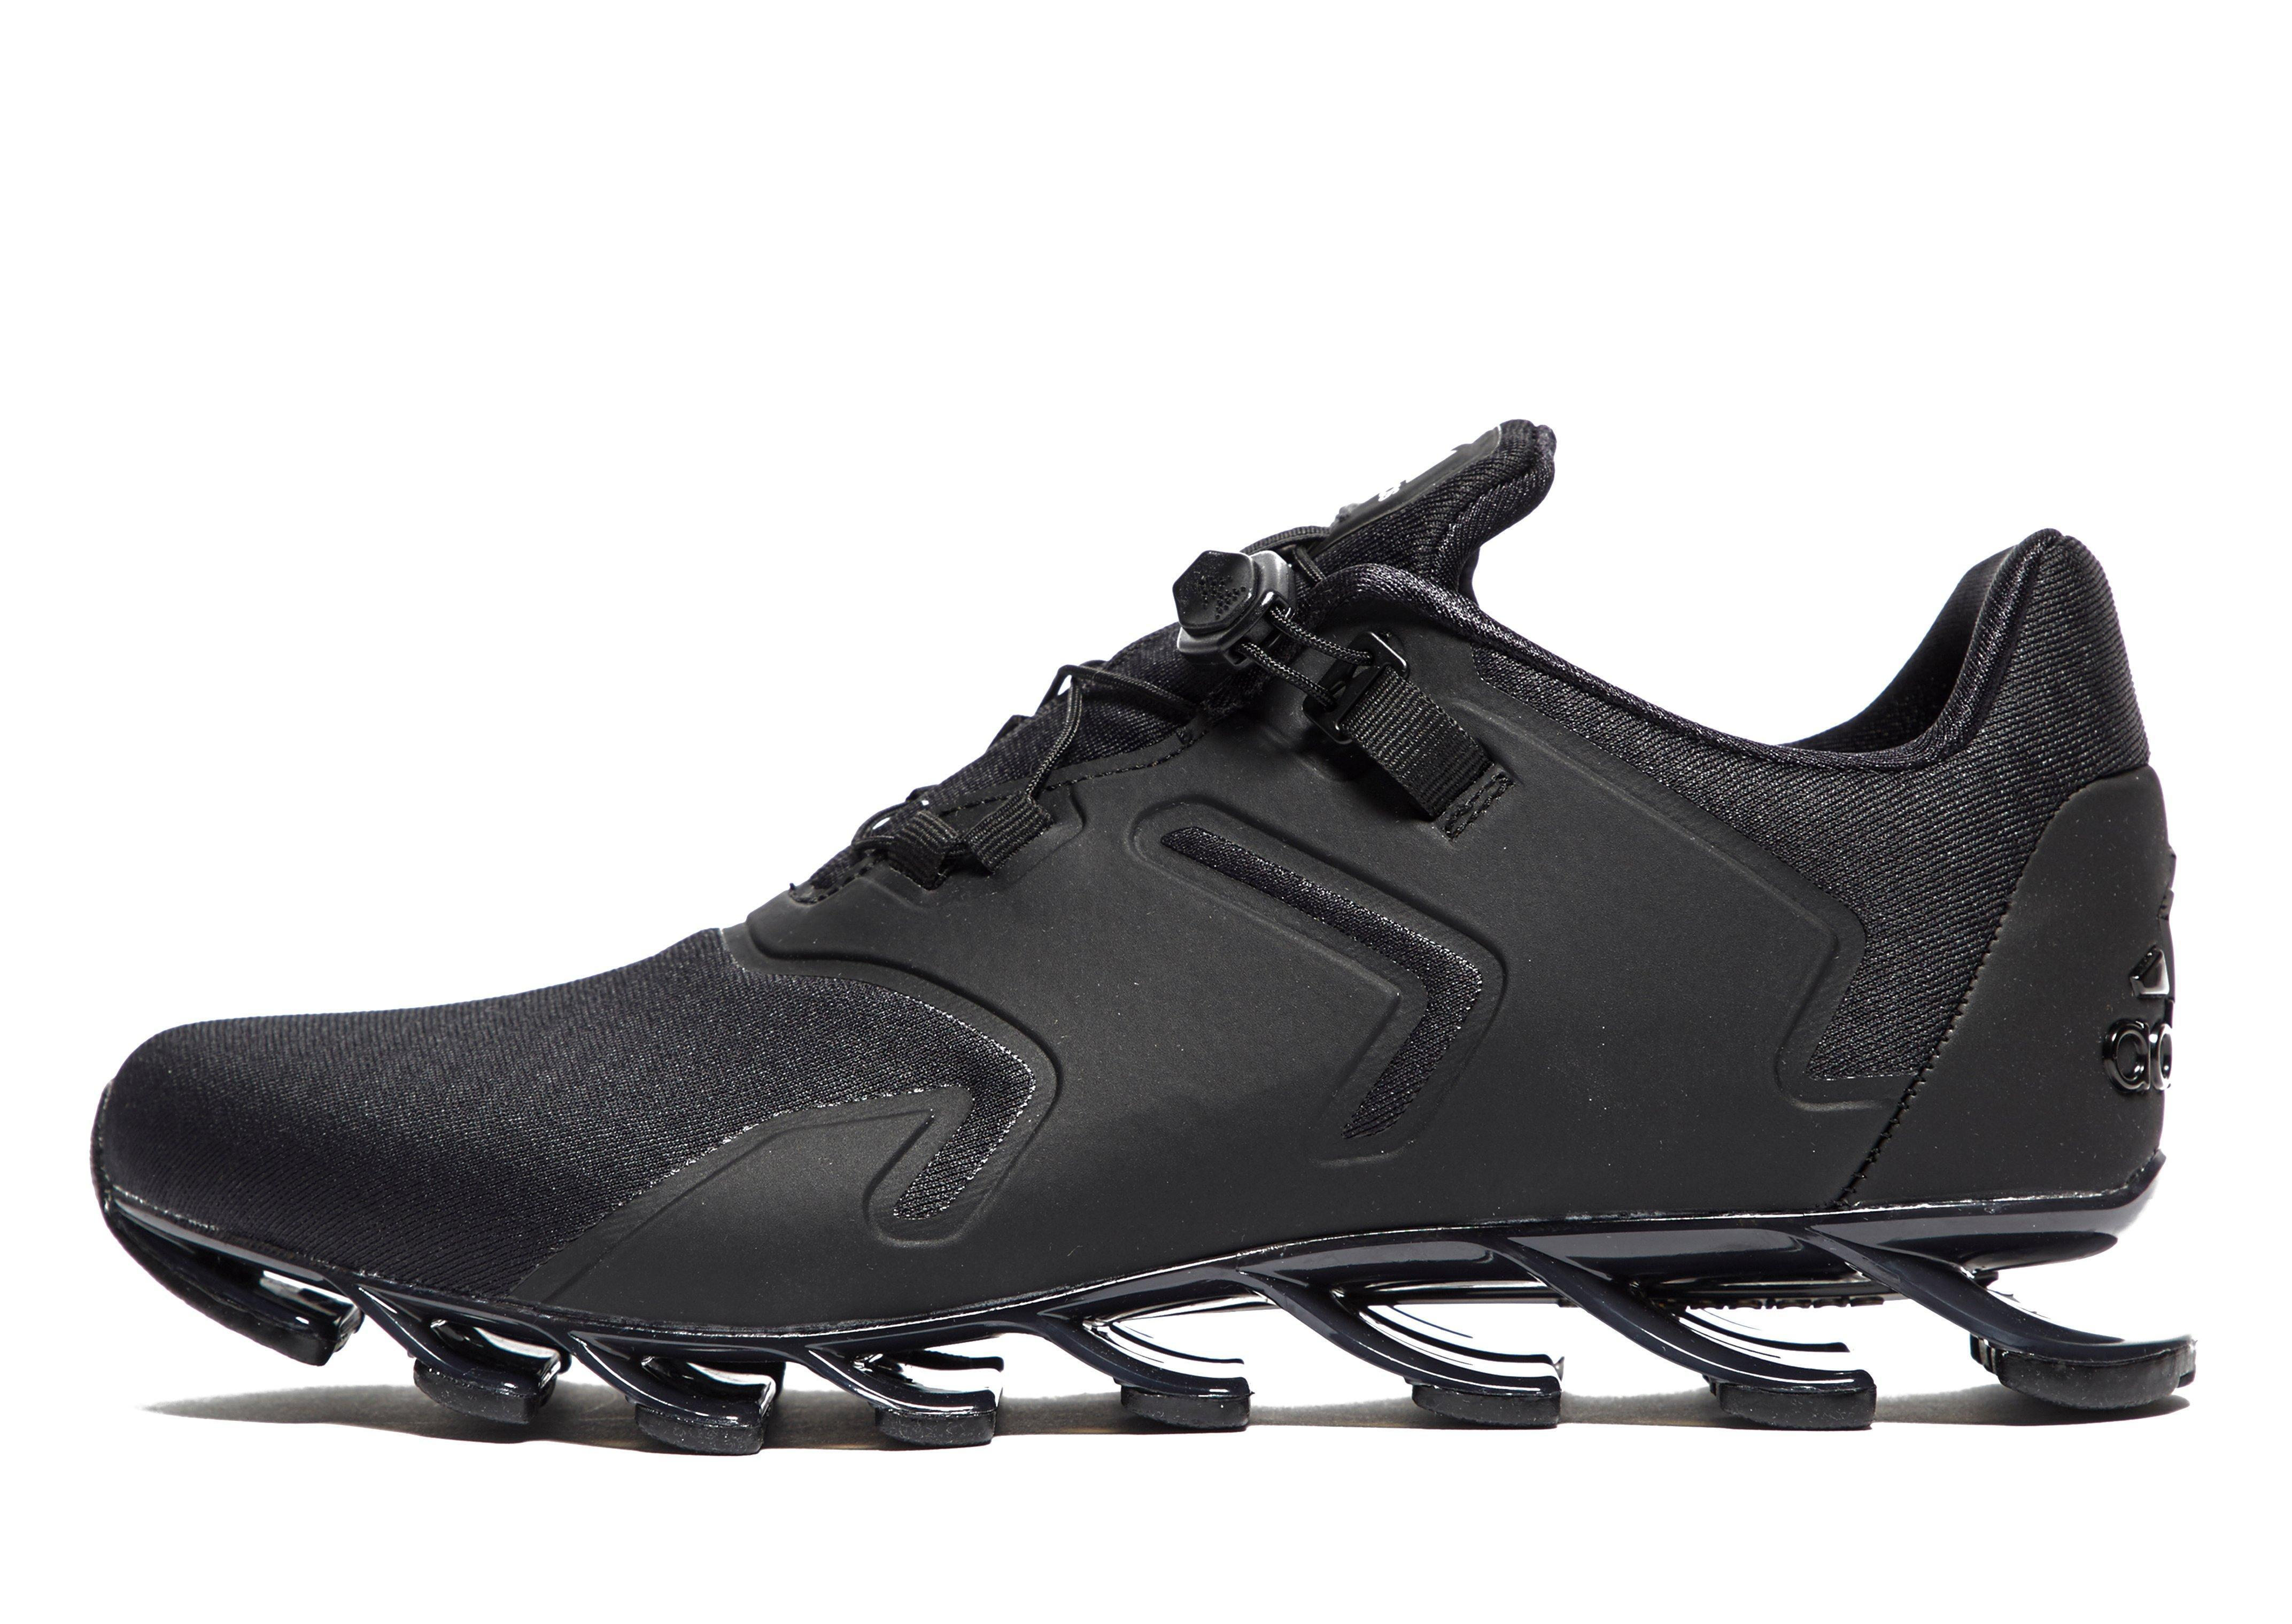 newest 51ed7 63c4b ... Adidas Springblade Solyce Running Shoes in Black Lyst ...